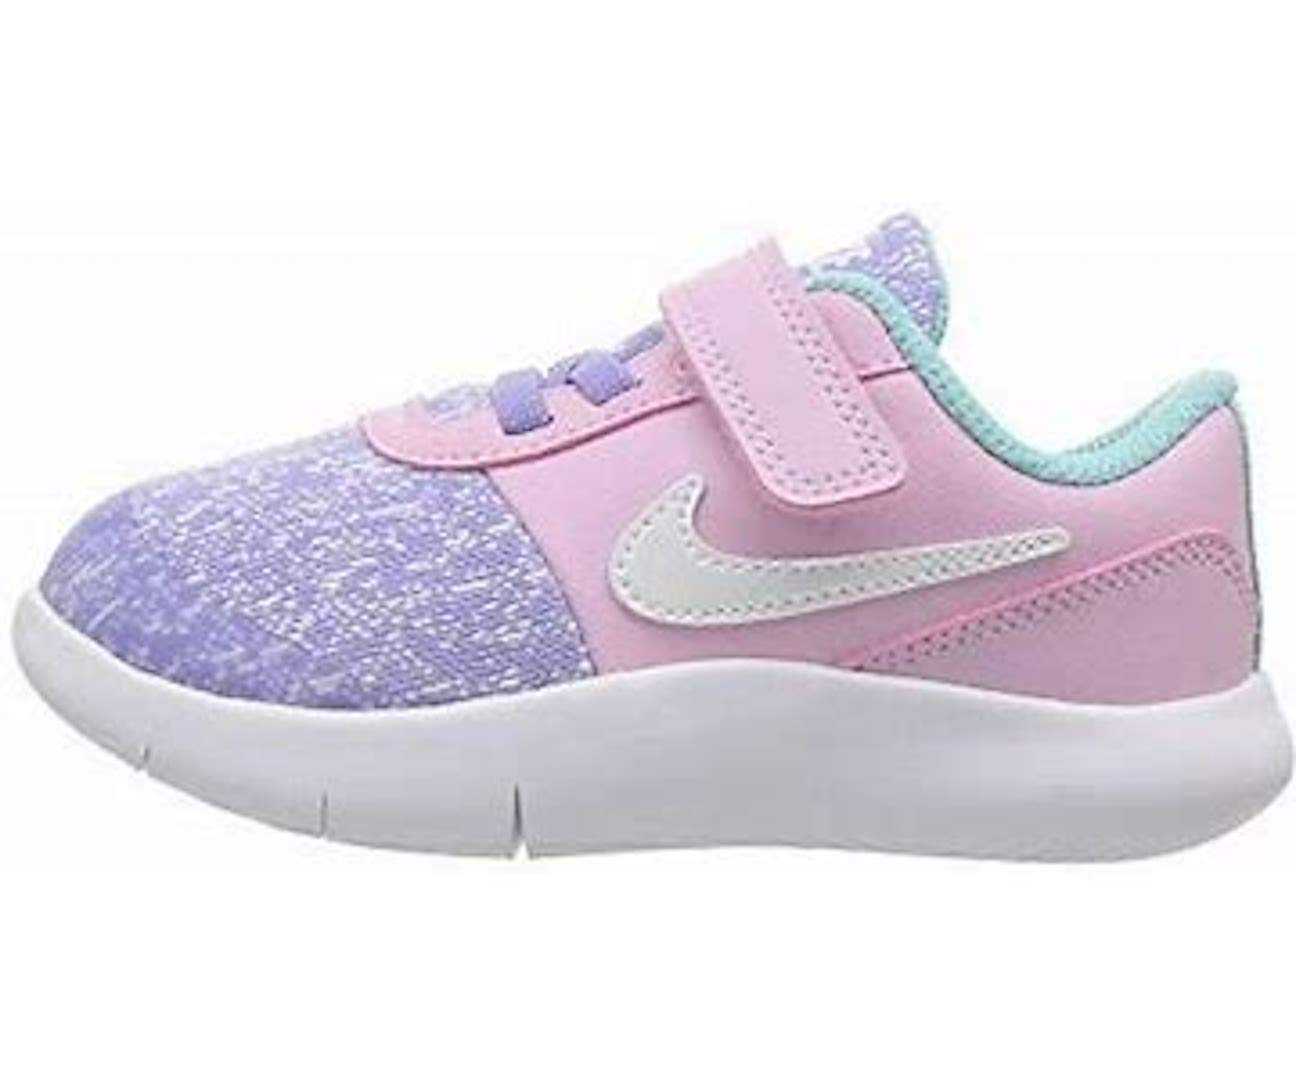 Nike Girls 4-10 Flex Contact Unicorn Sneakers (10M Toddler, Ocnbls/White)